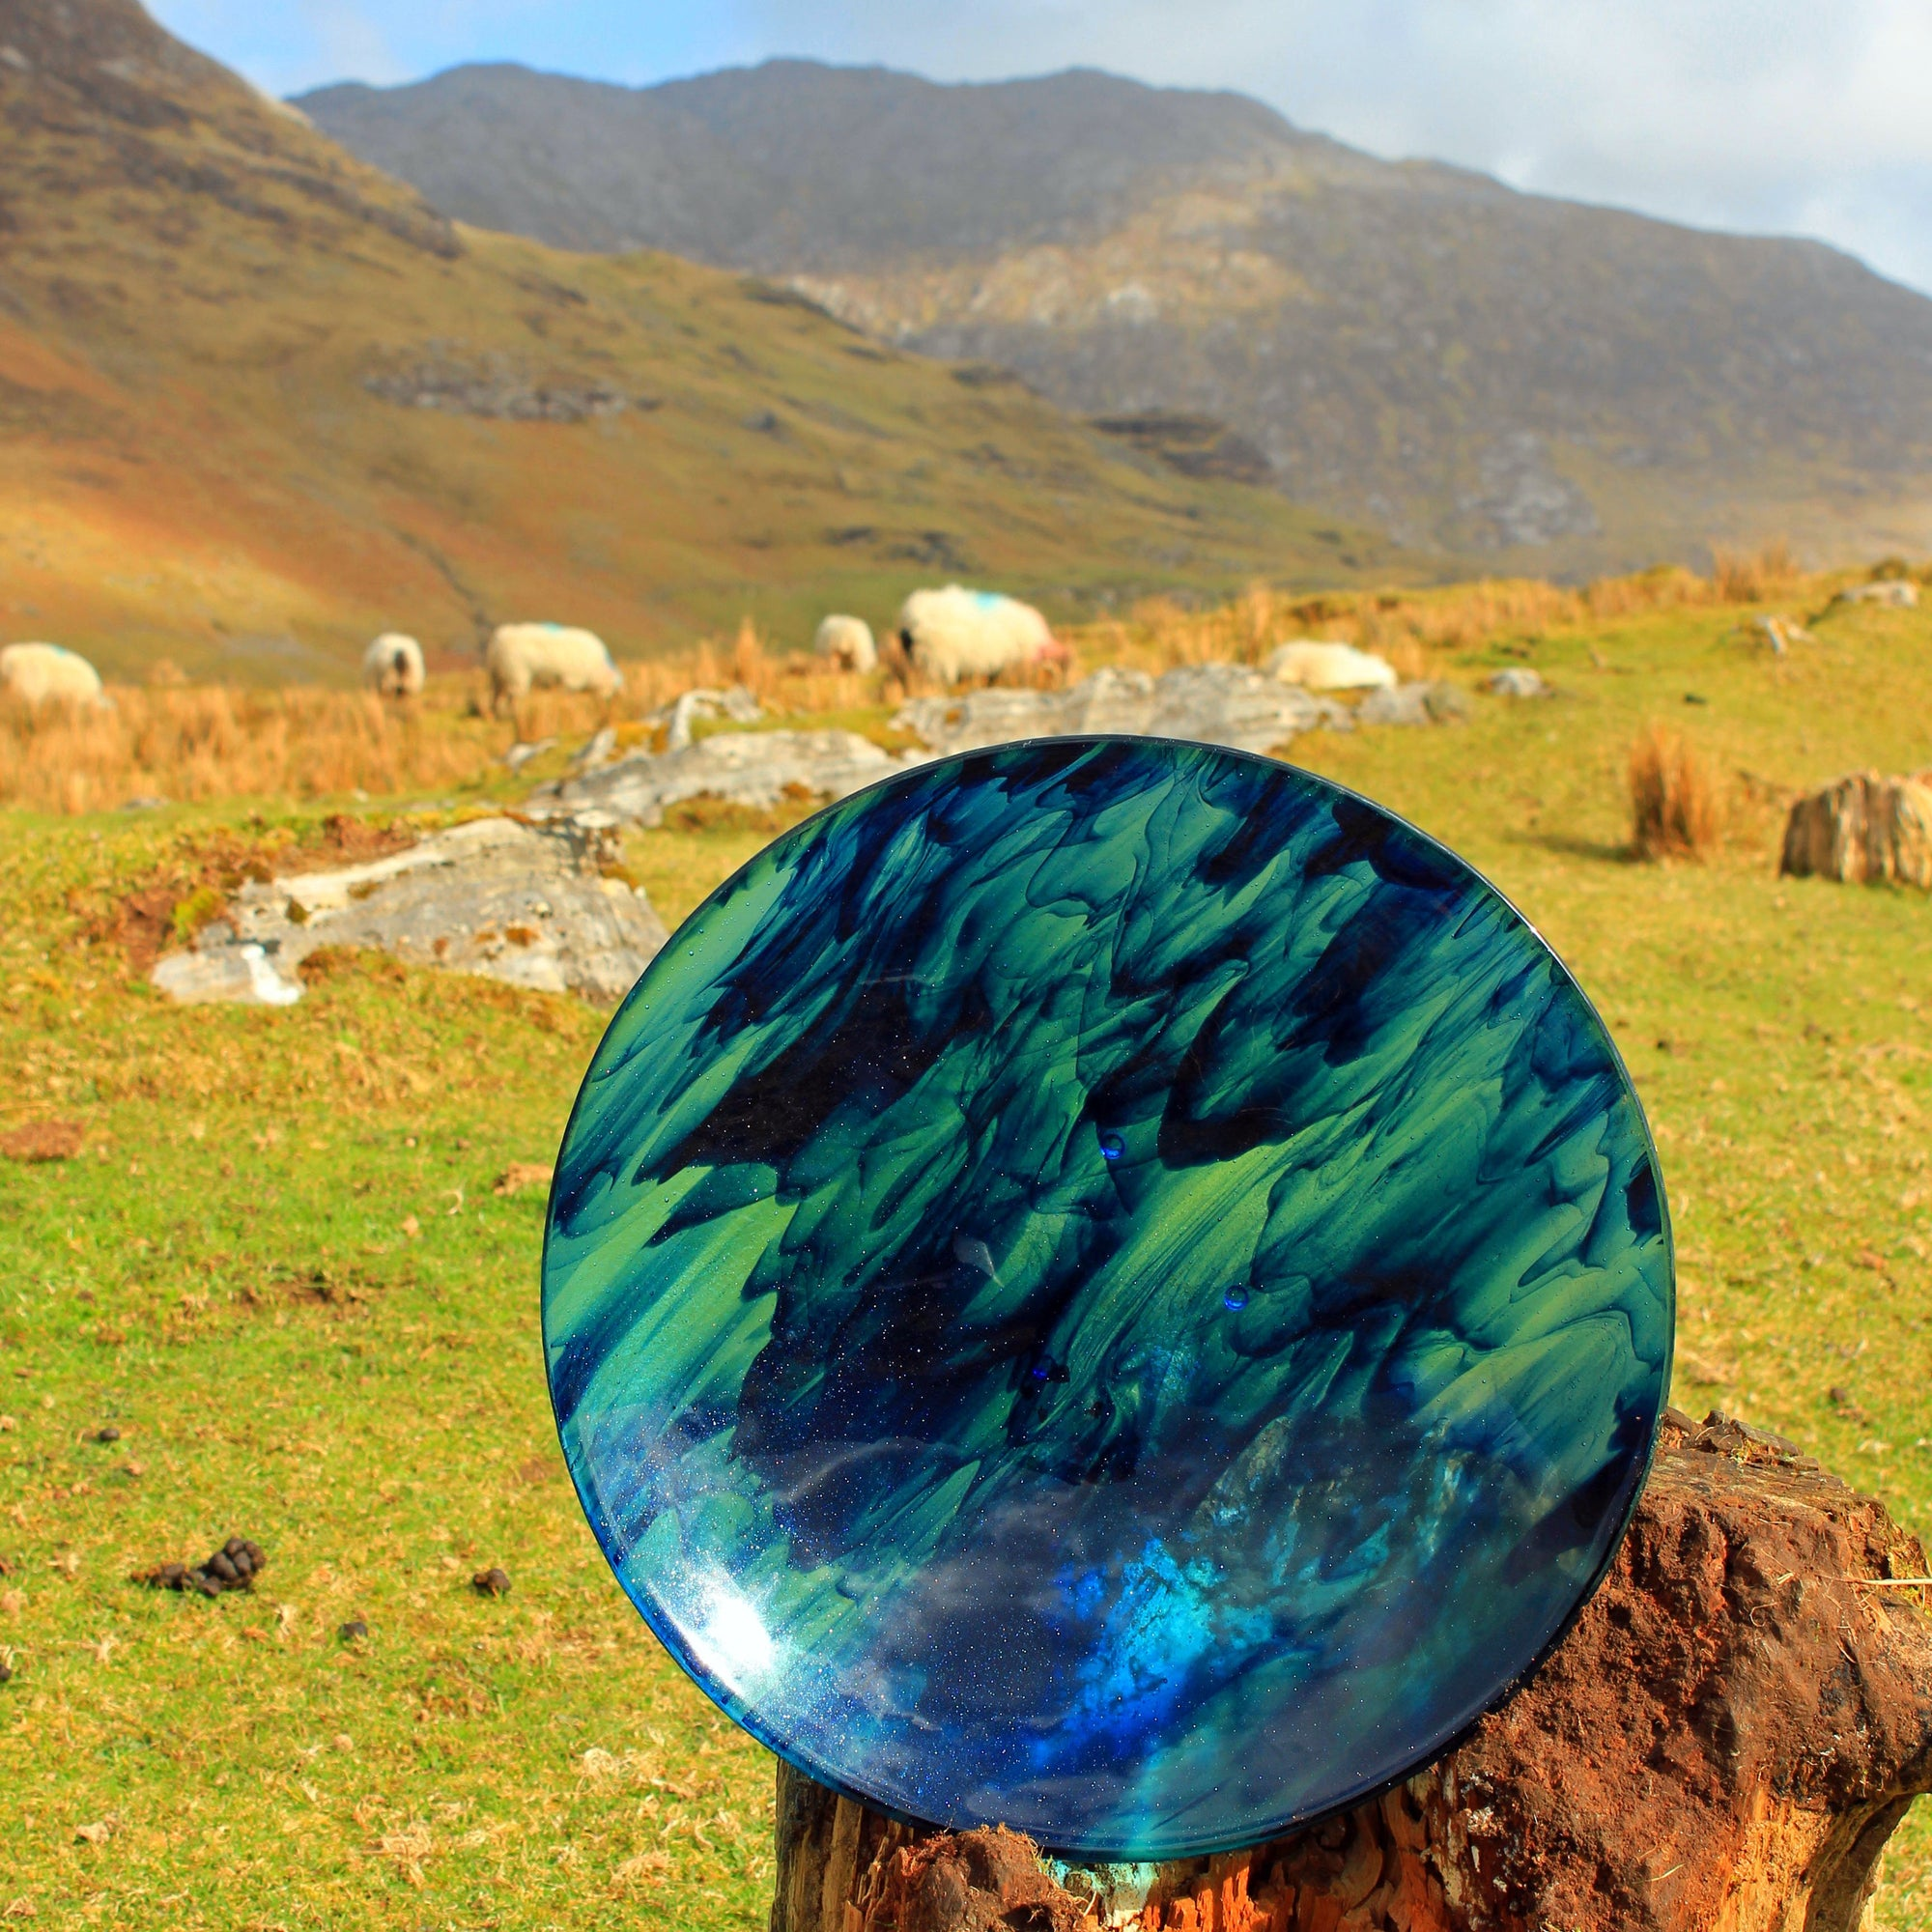 A fused streaky glass bowl made by Connemara Blue